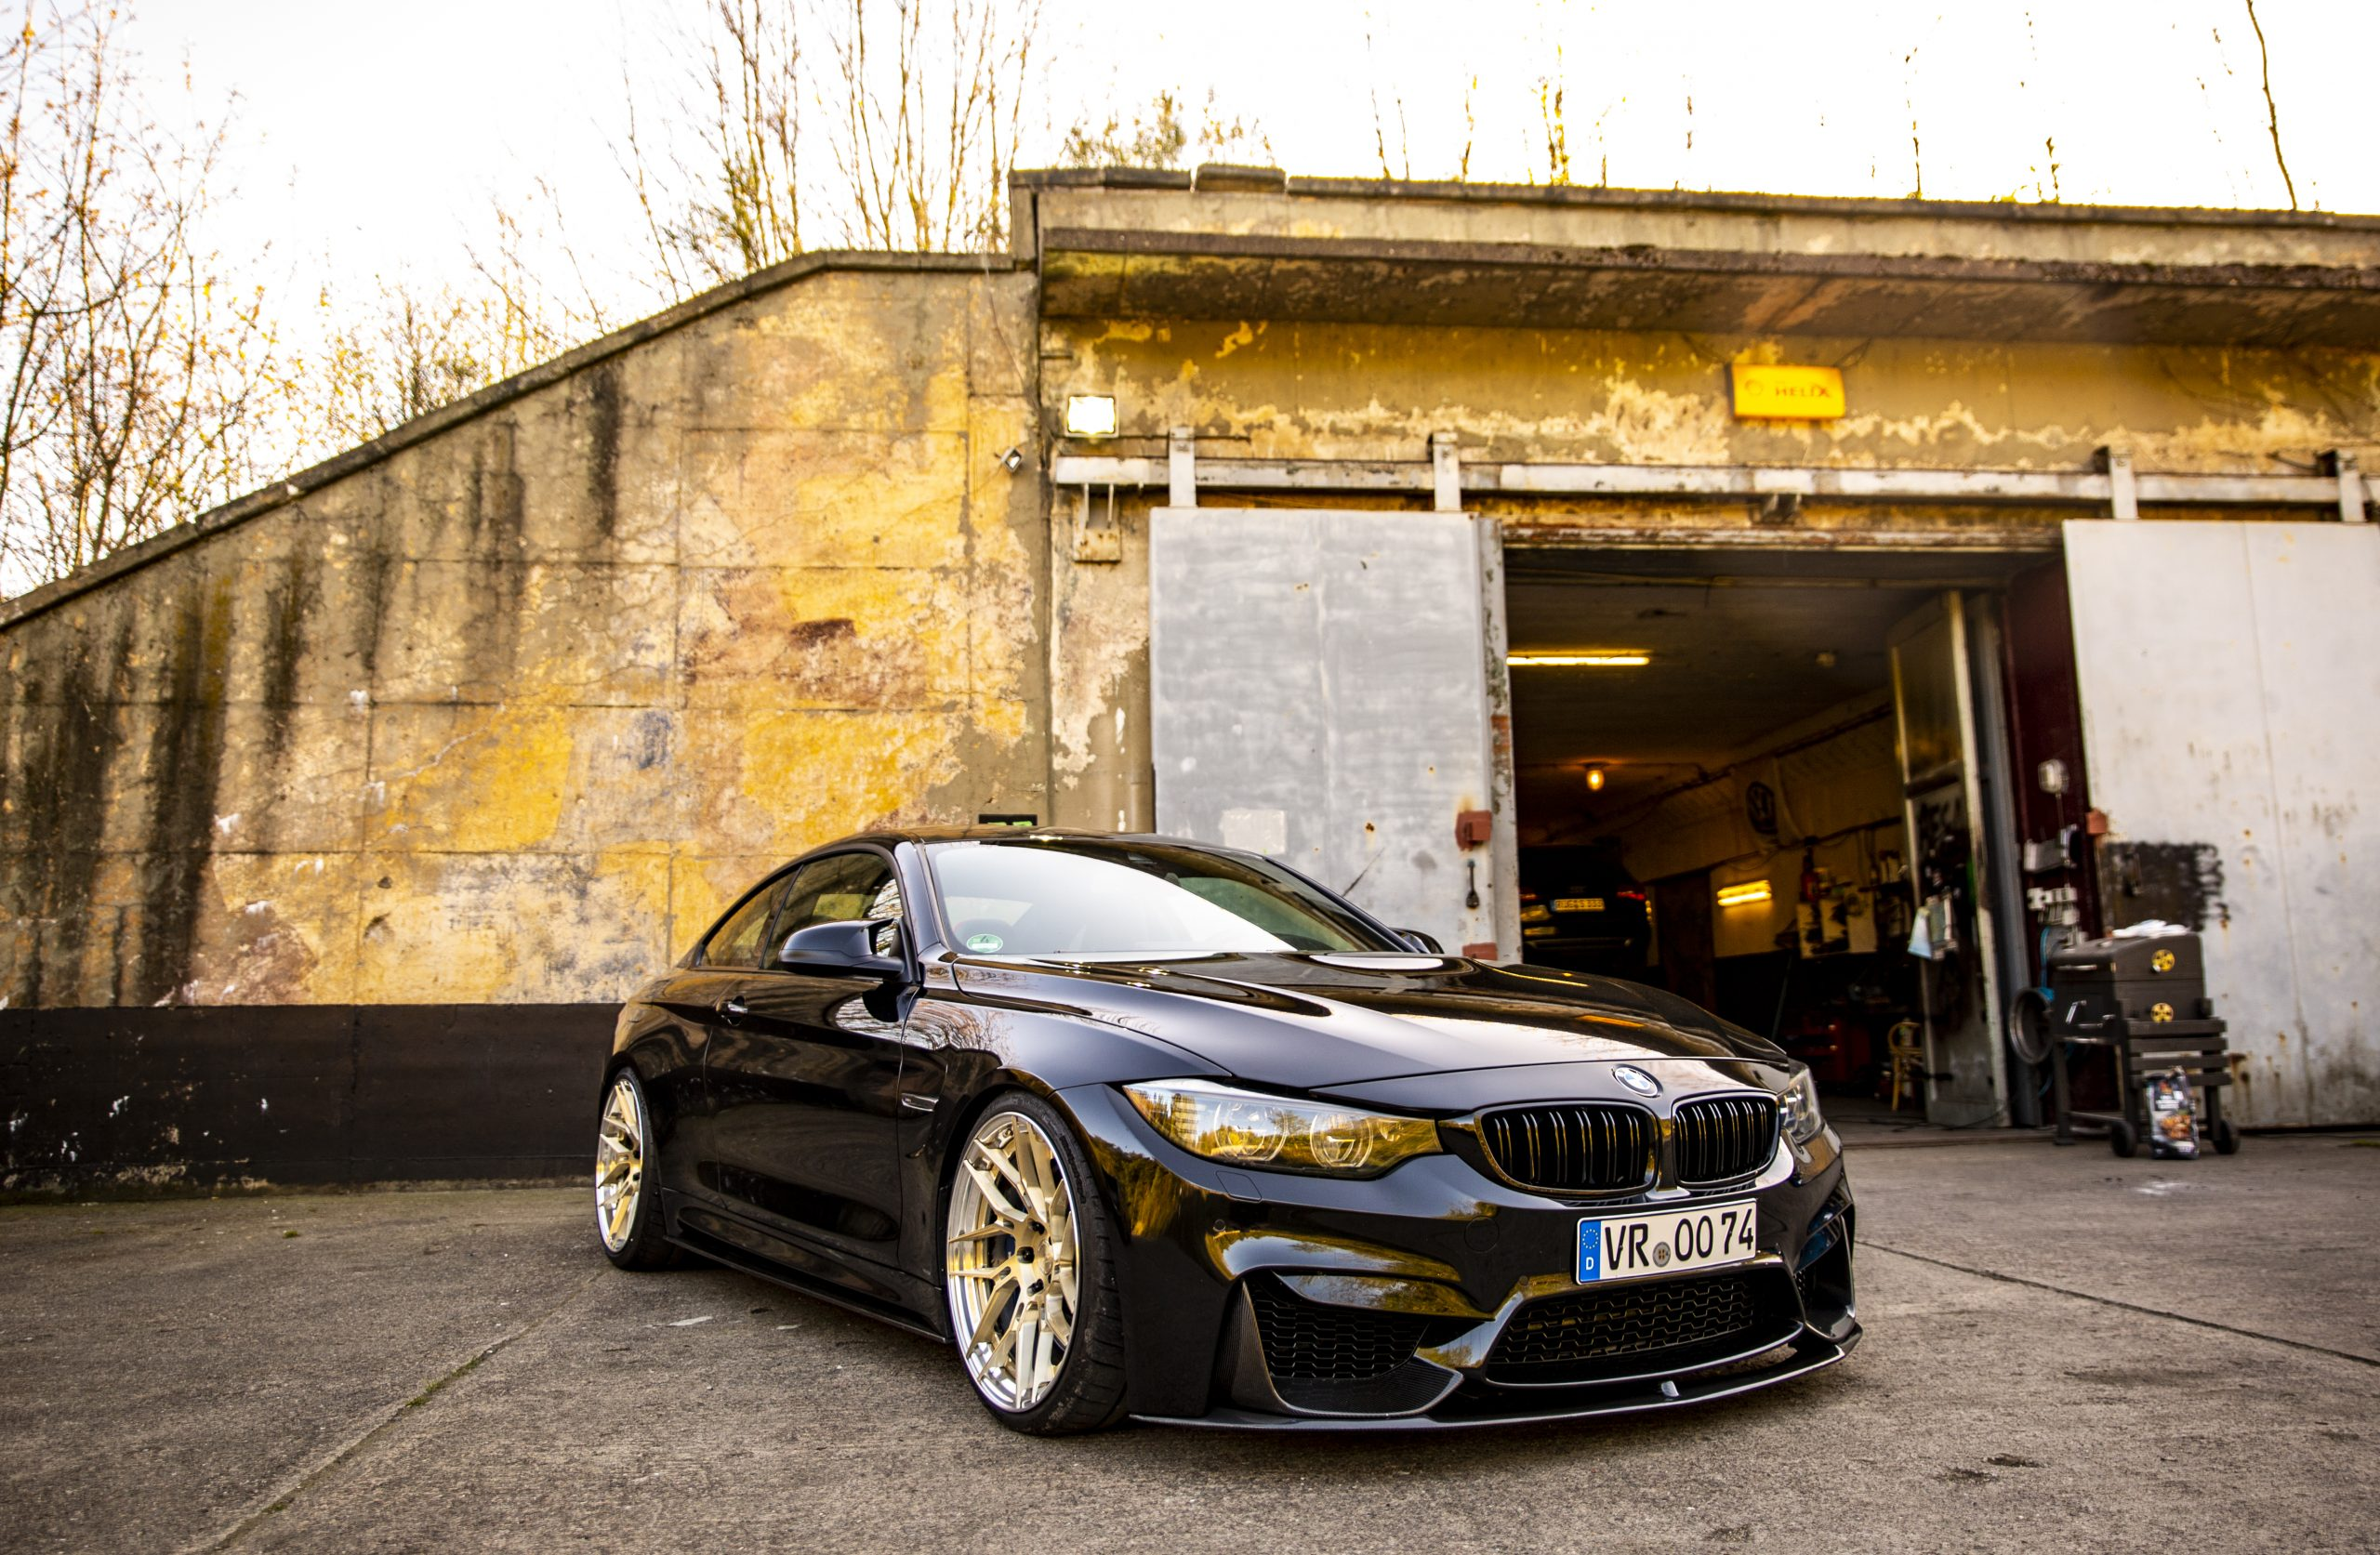 BMW M4 BP900 by Broo Performance